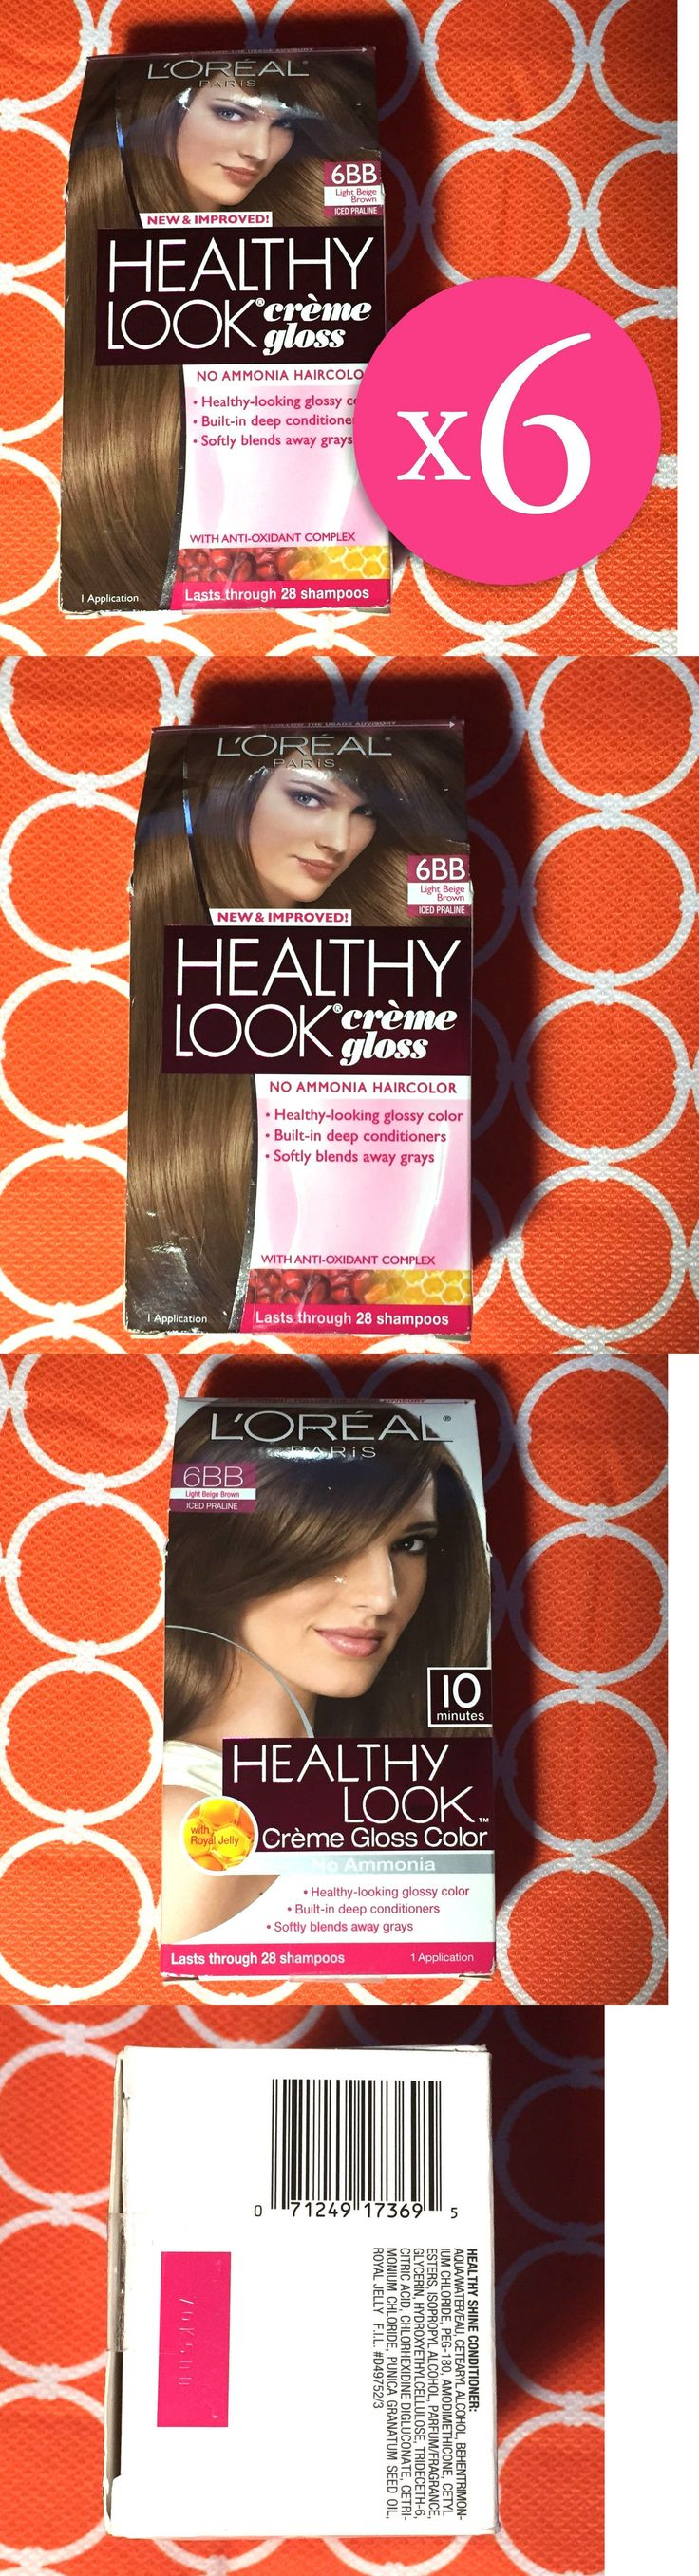 Hair Color: 6 L Oreal Healthy Look Creme Gloss Haircolor #6Bb Light Beige Brown Iced Praline -> BUY IT NOW ONLY: $69.23 on eBay!